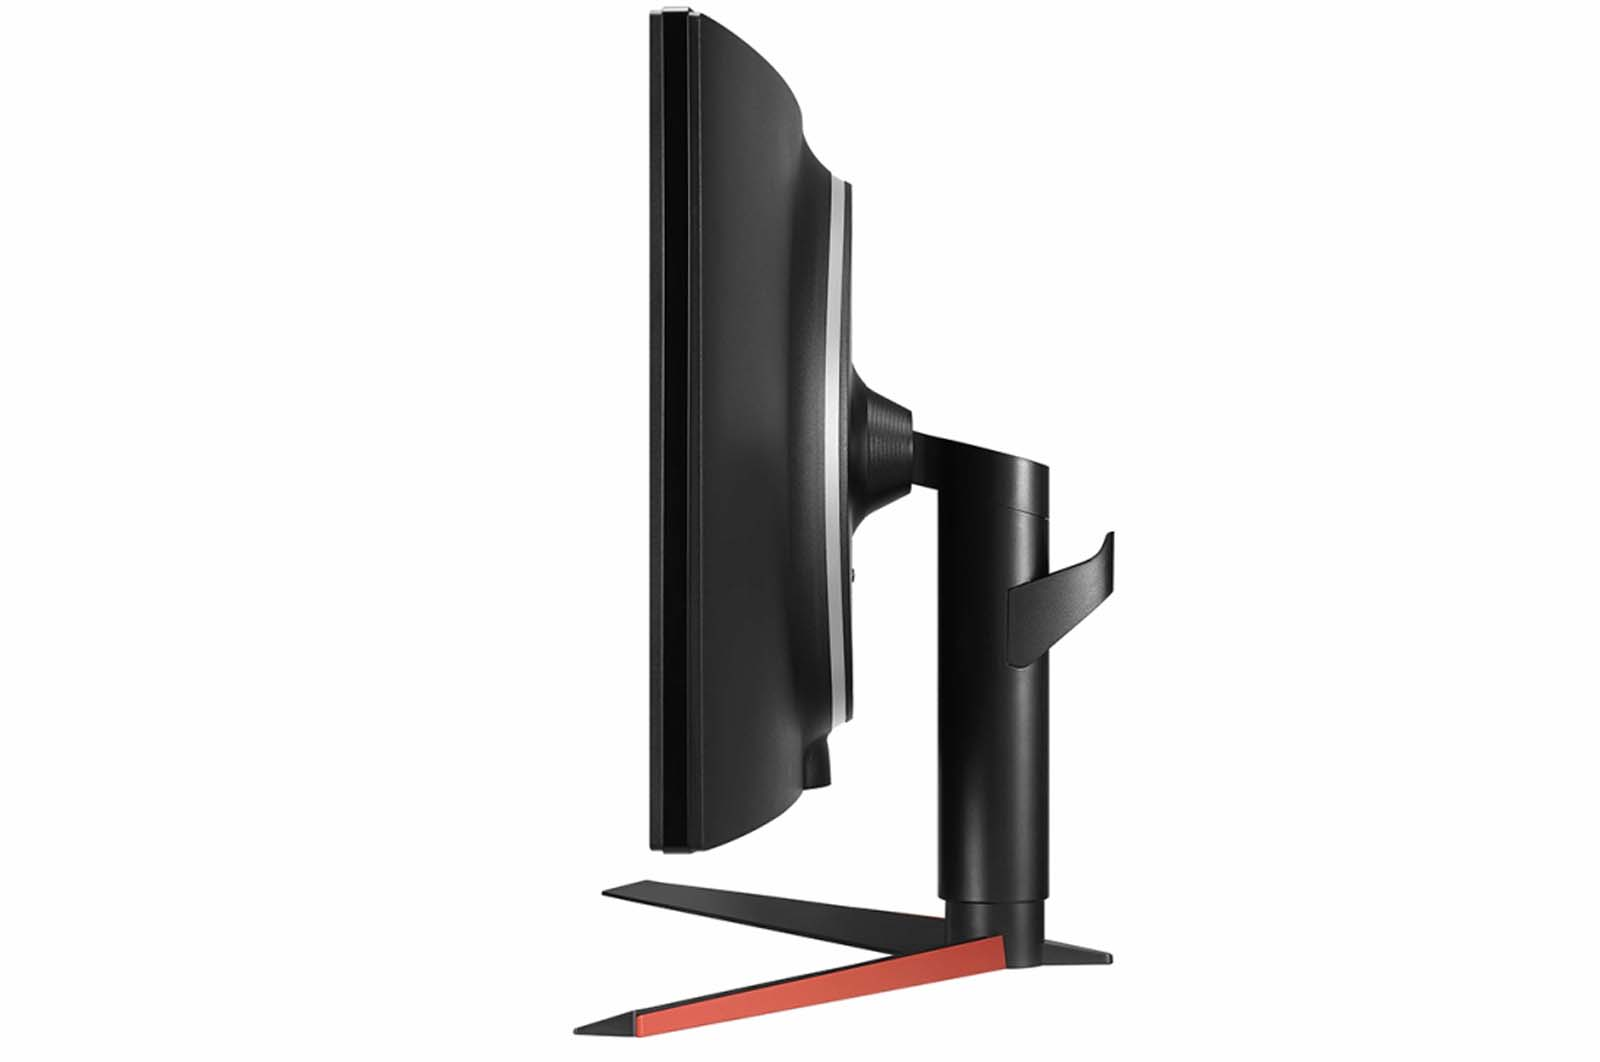 lg_34gk950g-b_ultragear_gaming_monitor_3.jpg